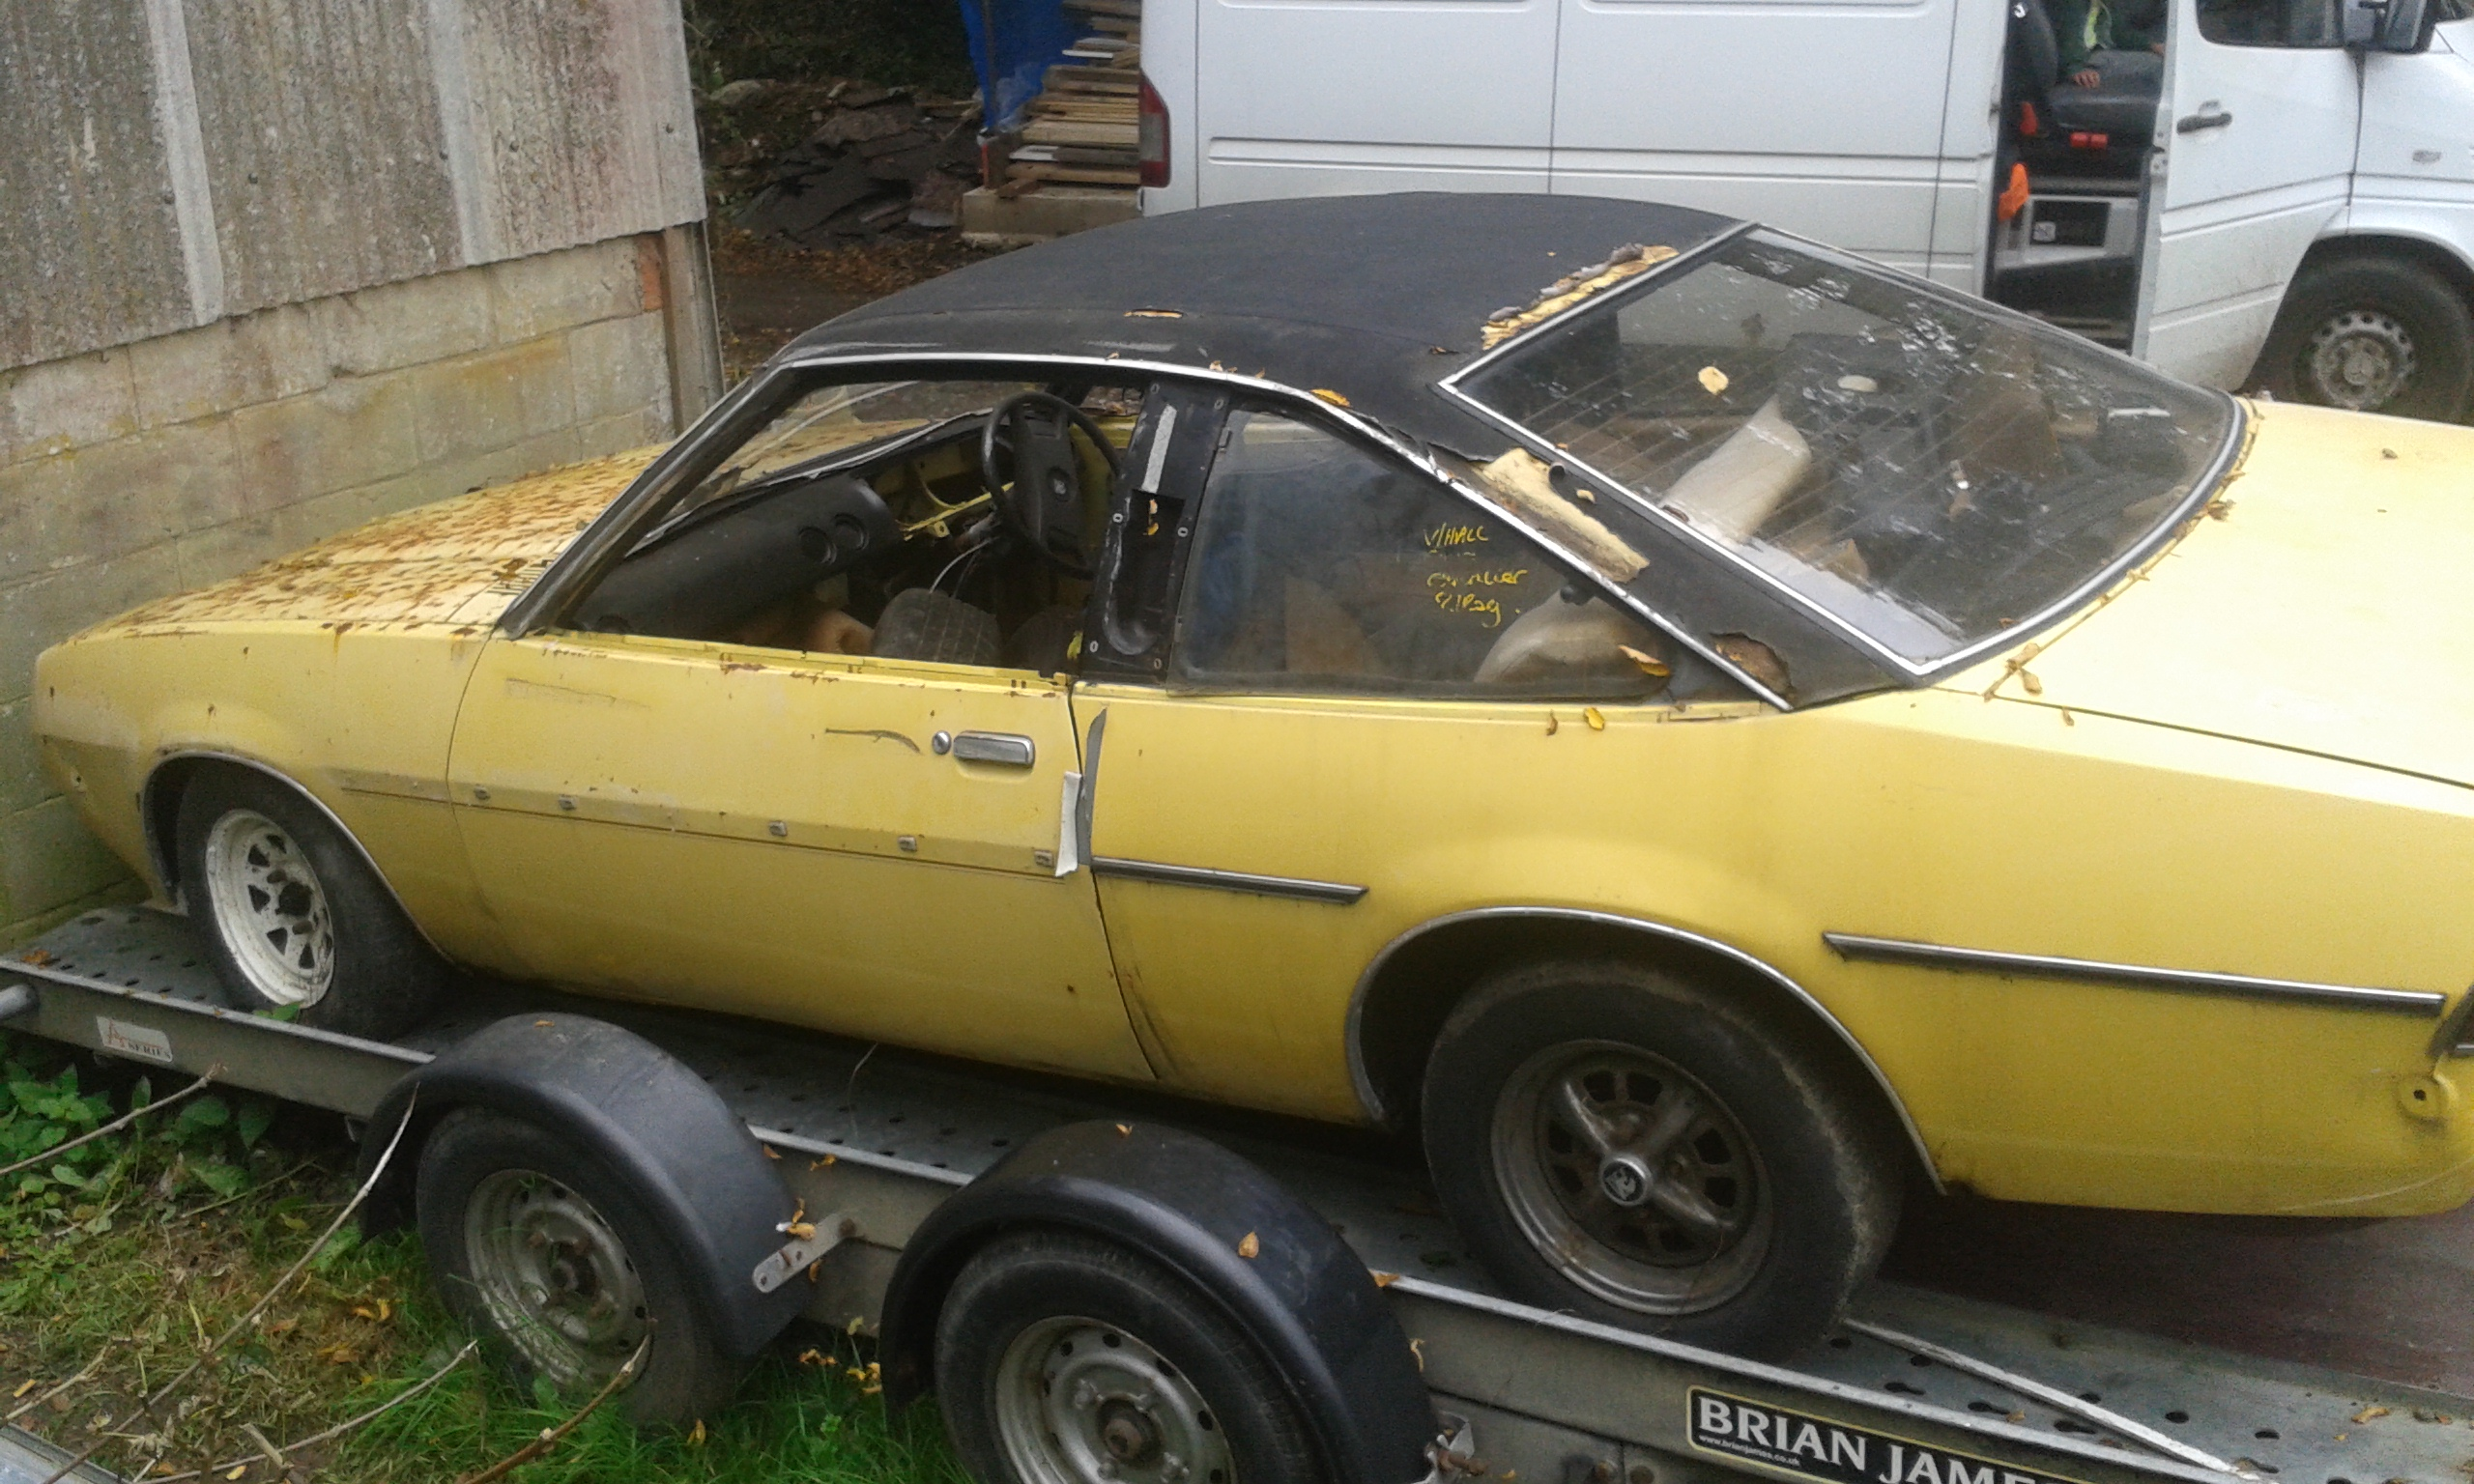 mk1 vauxhall cavalier 79 coupe - Cars For Sale - Opel Manta Owners Club